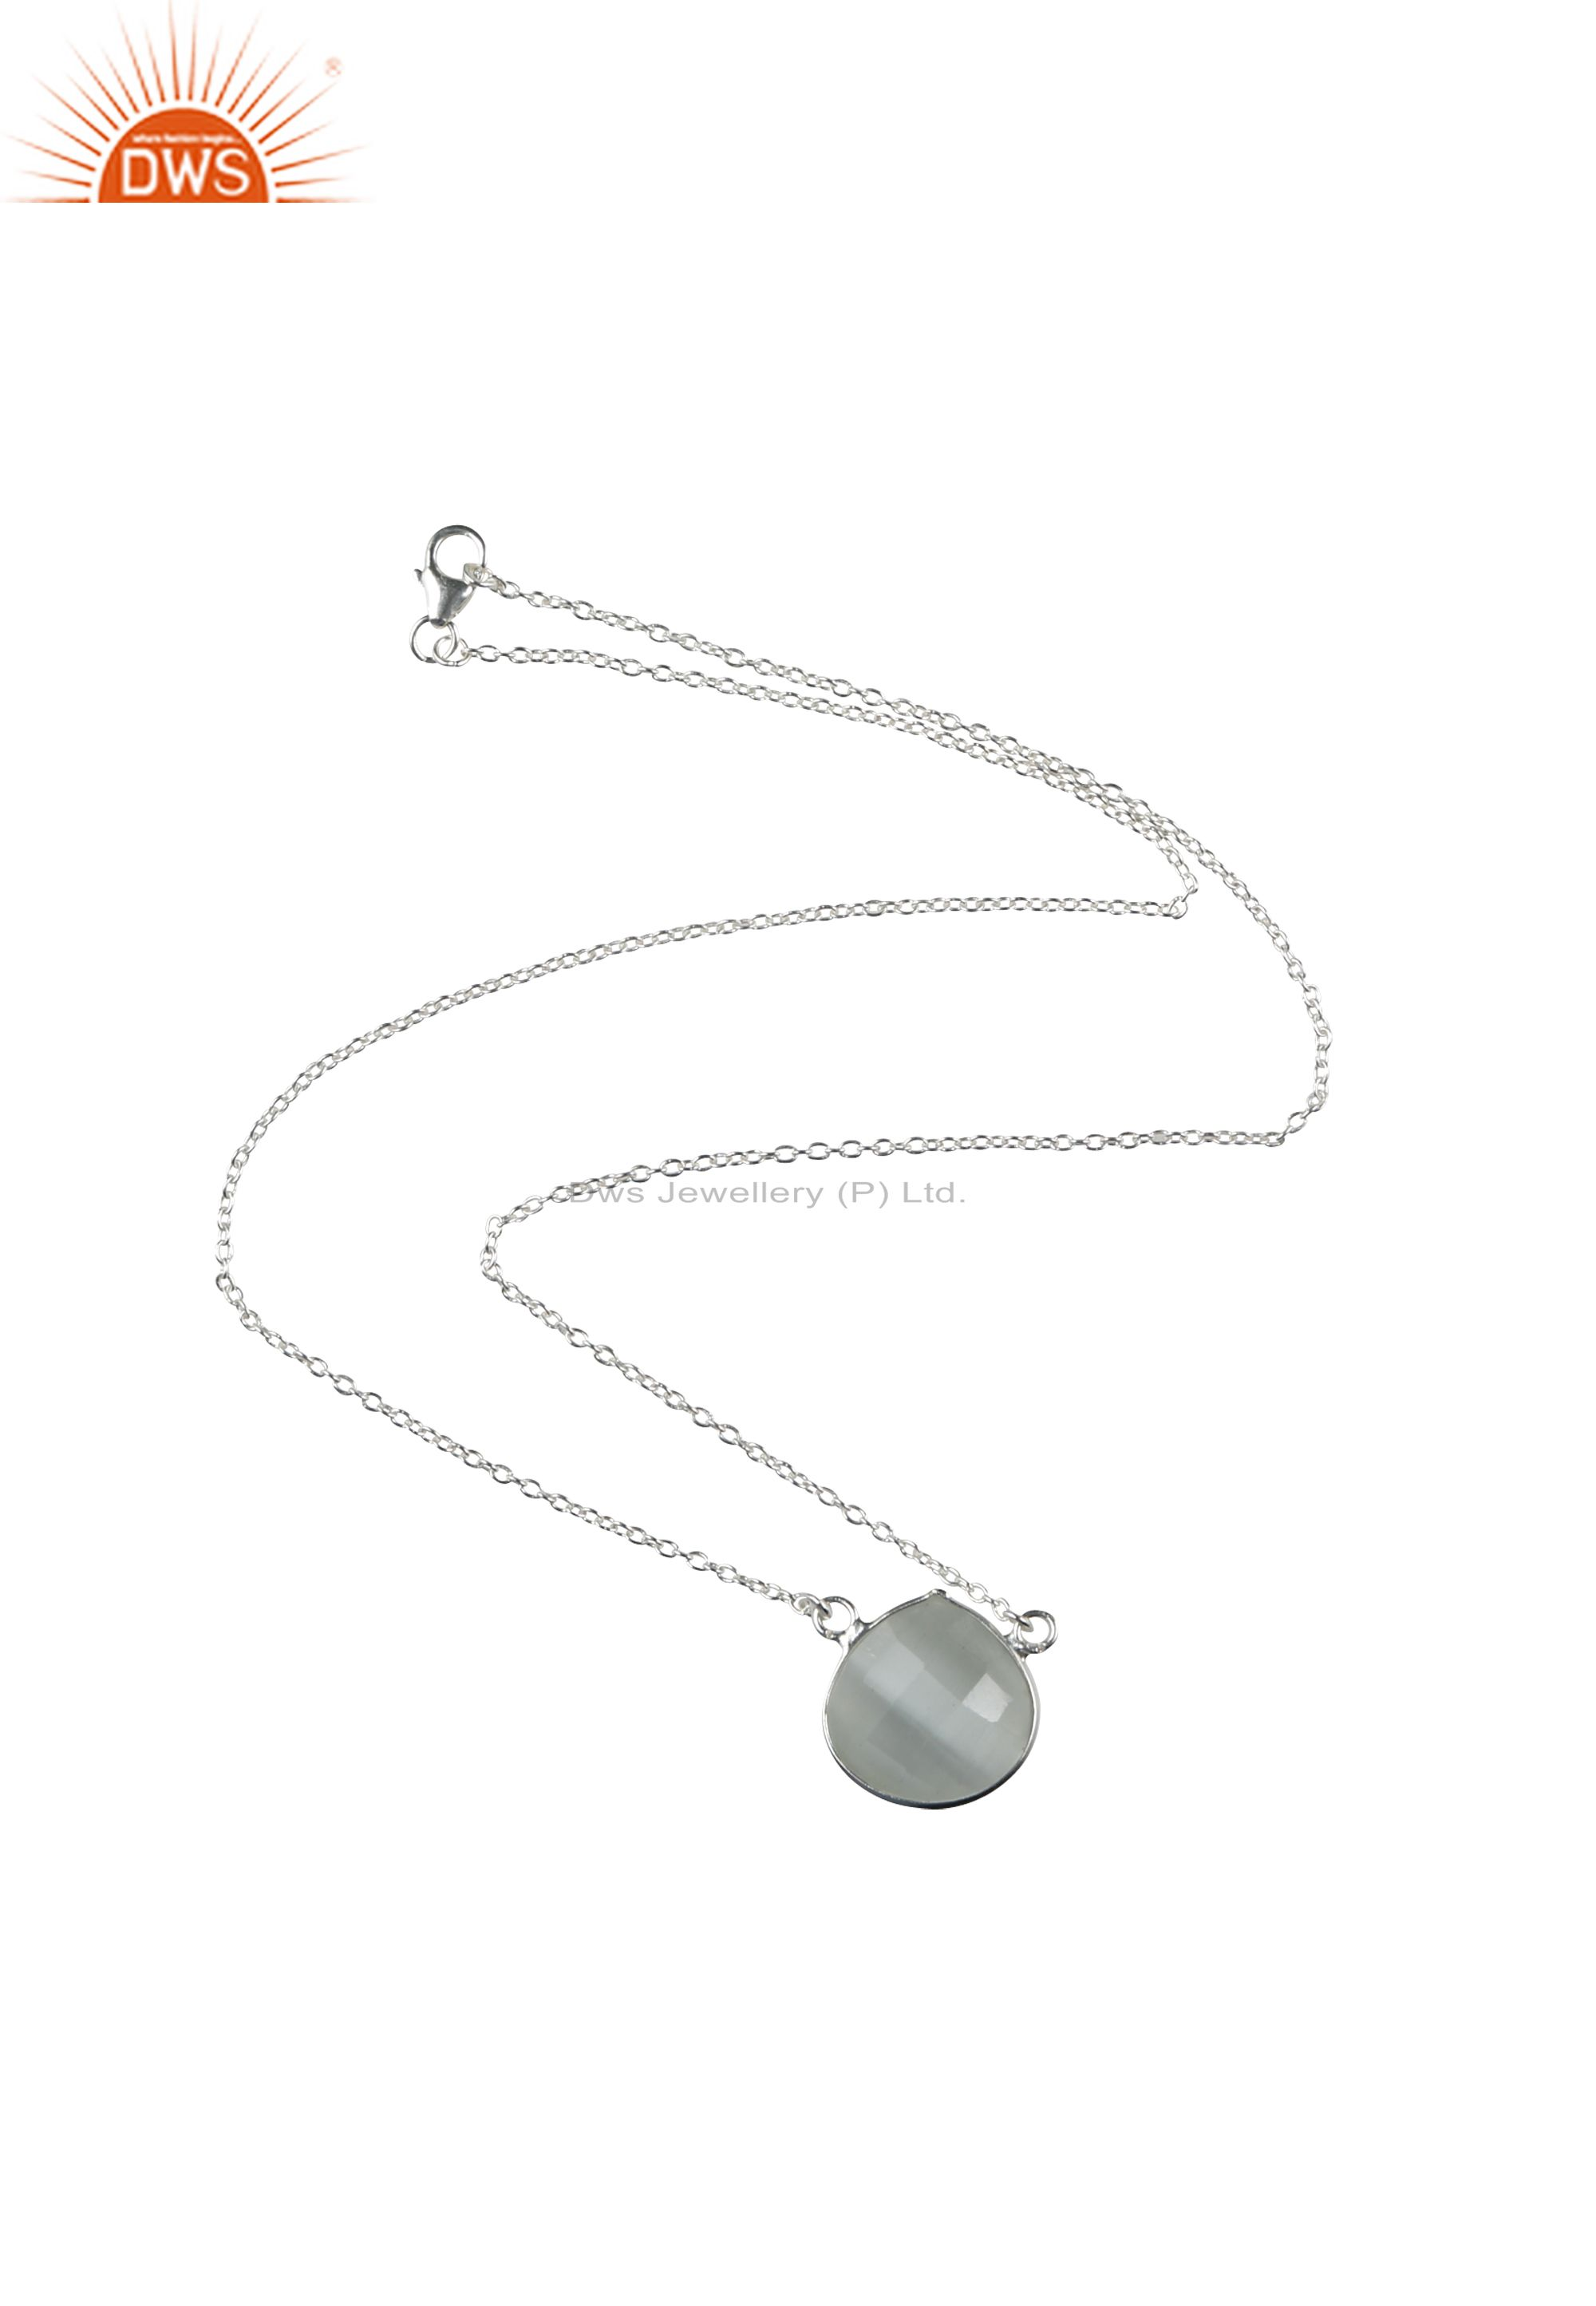 Handmade sterling silver faceted white moonstone bezel pendant chain necklace